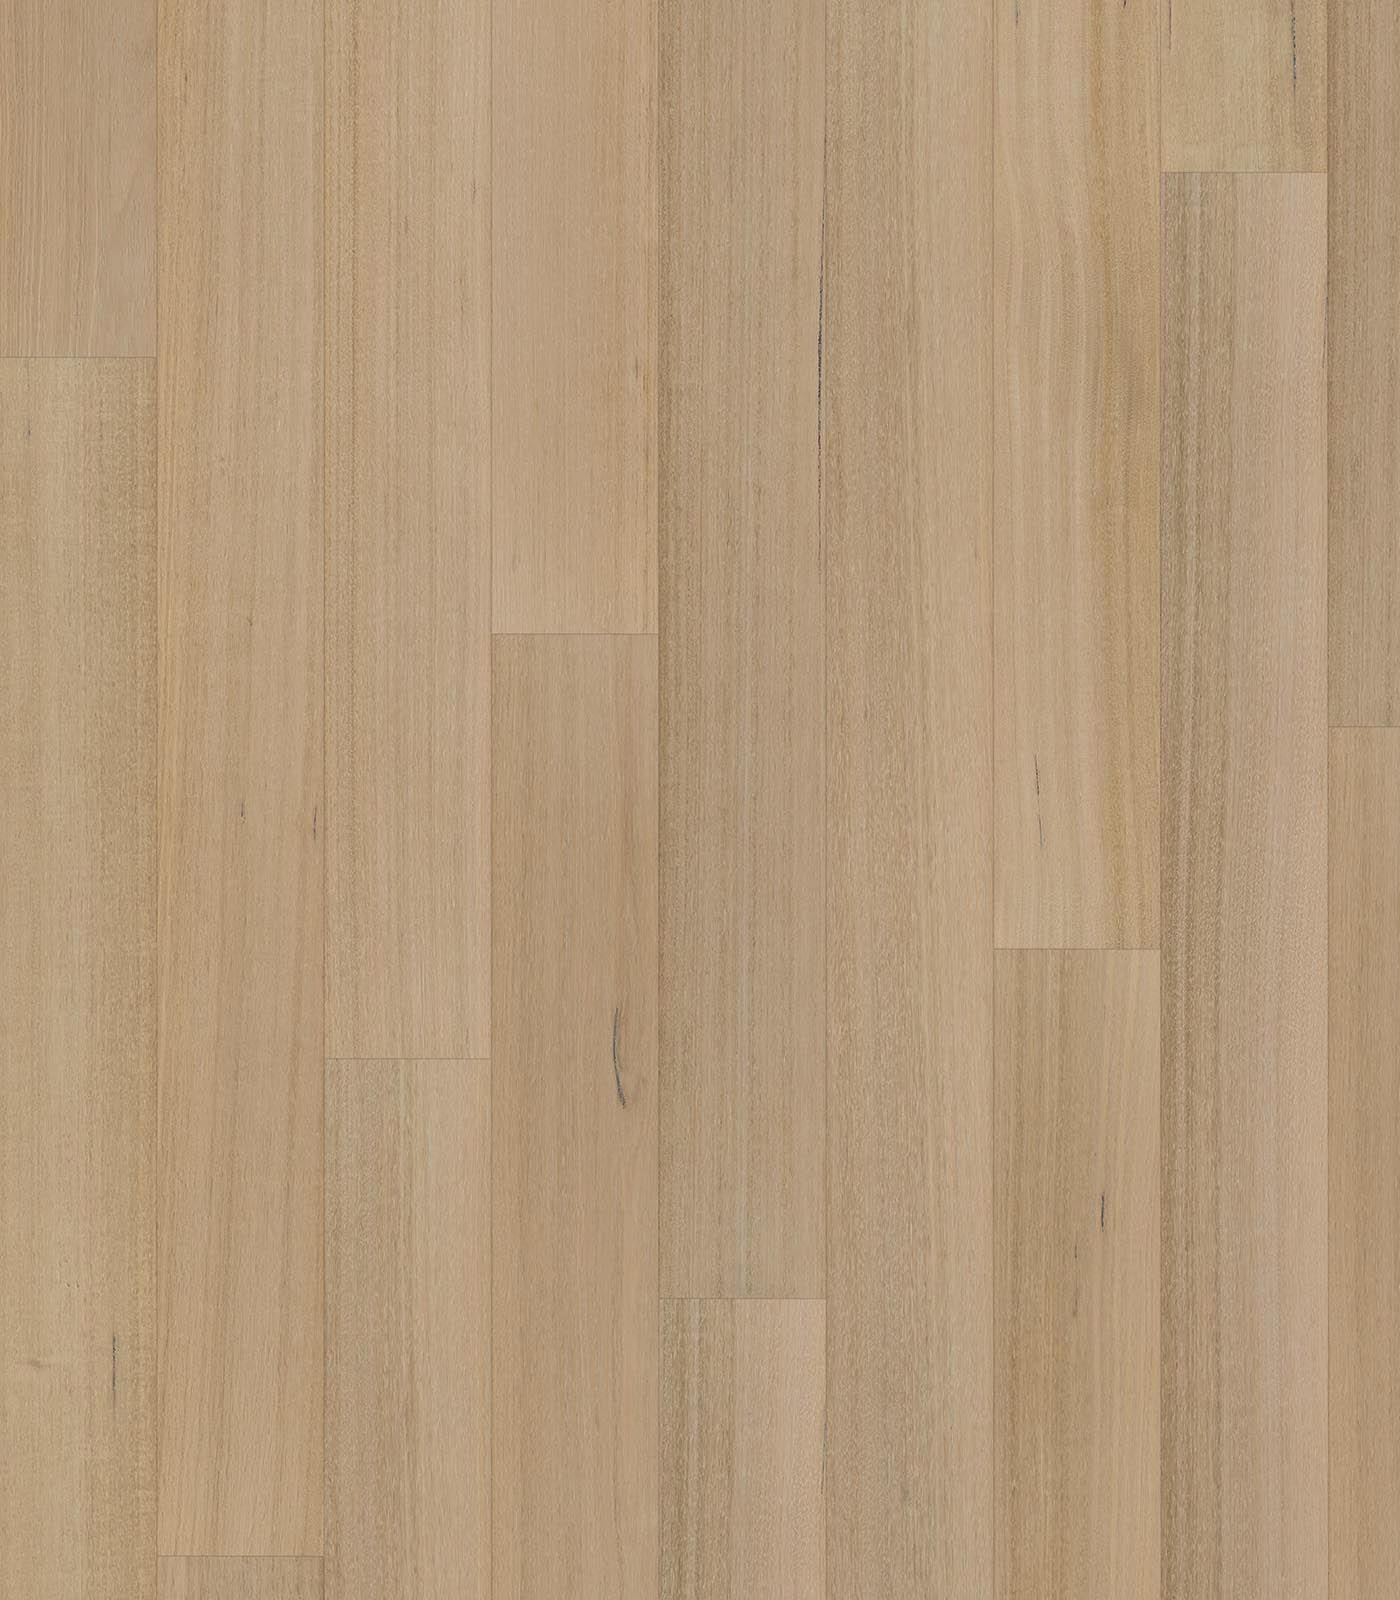 Queenstown-After Oak Collection-Tasmanian Oak Floors-flat